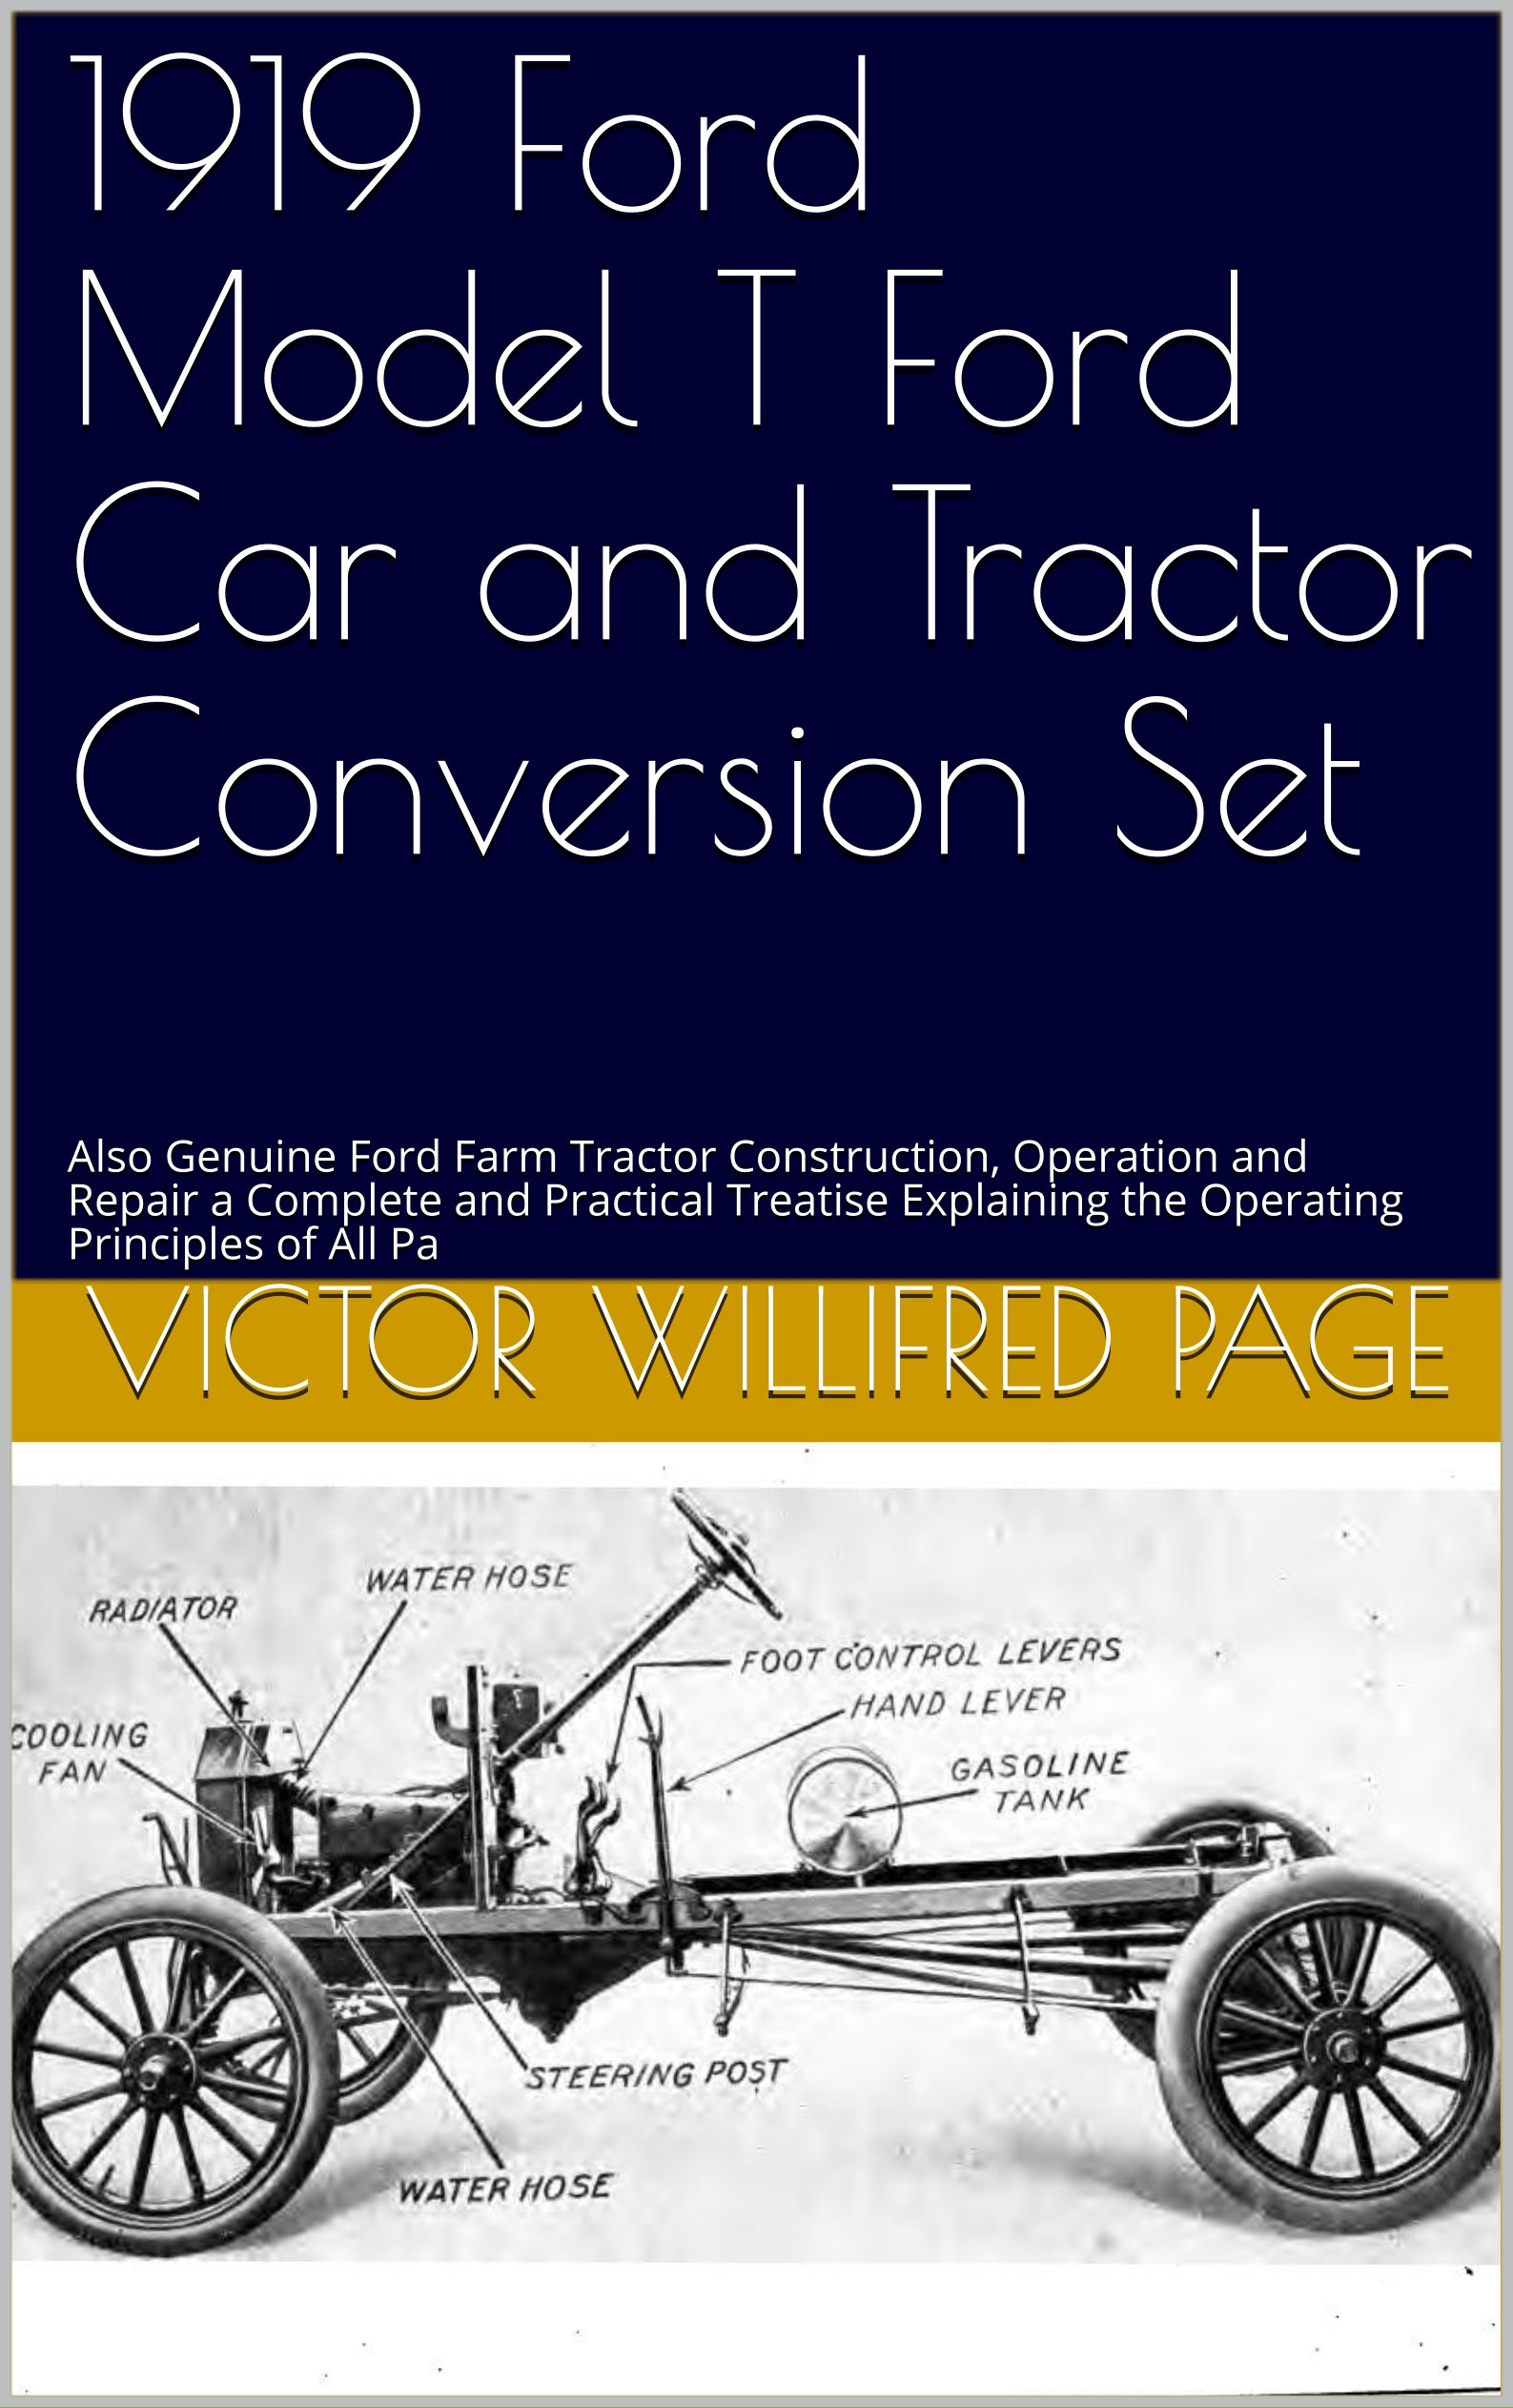 1919 Ford Model T Ford Car And Tractor Conversion Set  Also Genuine Ford Farm Tractor Construction Operation And Repair A Complete And Practical Treatise ... Principles Of All Pa  English Edition